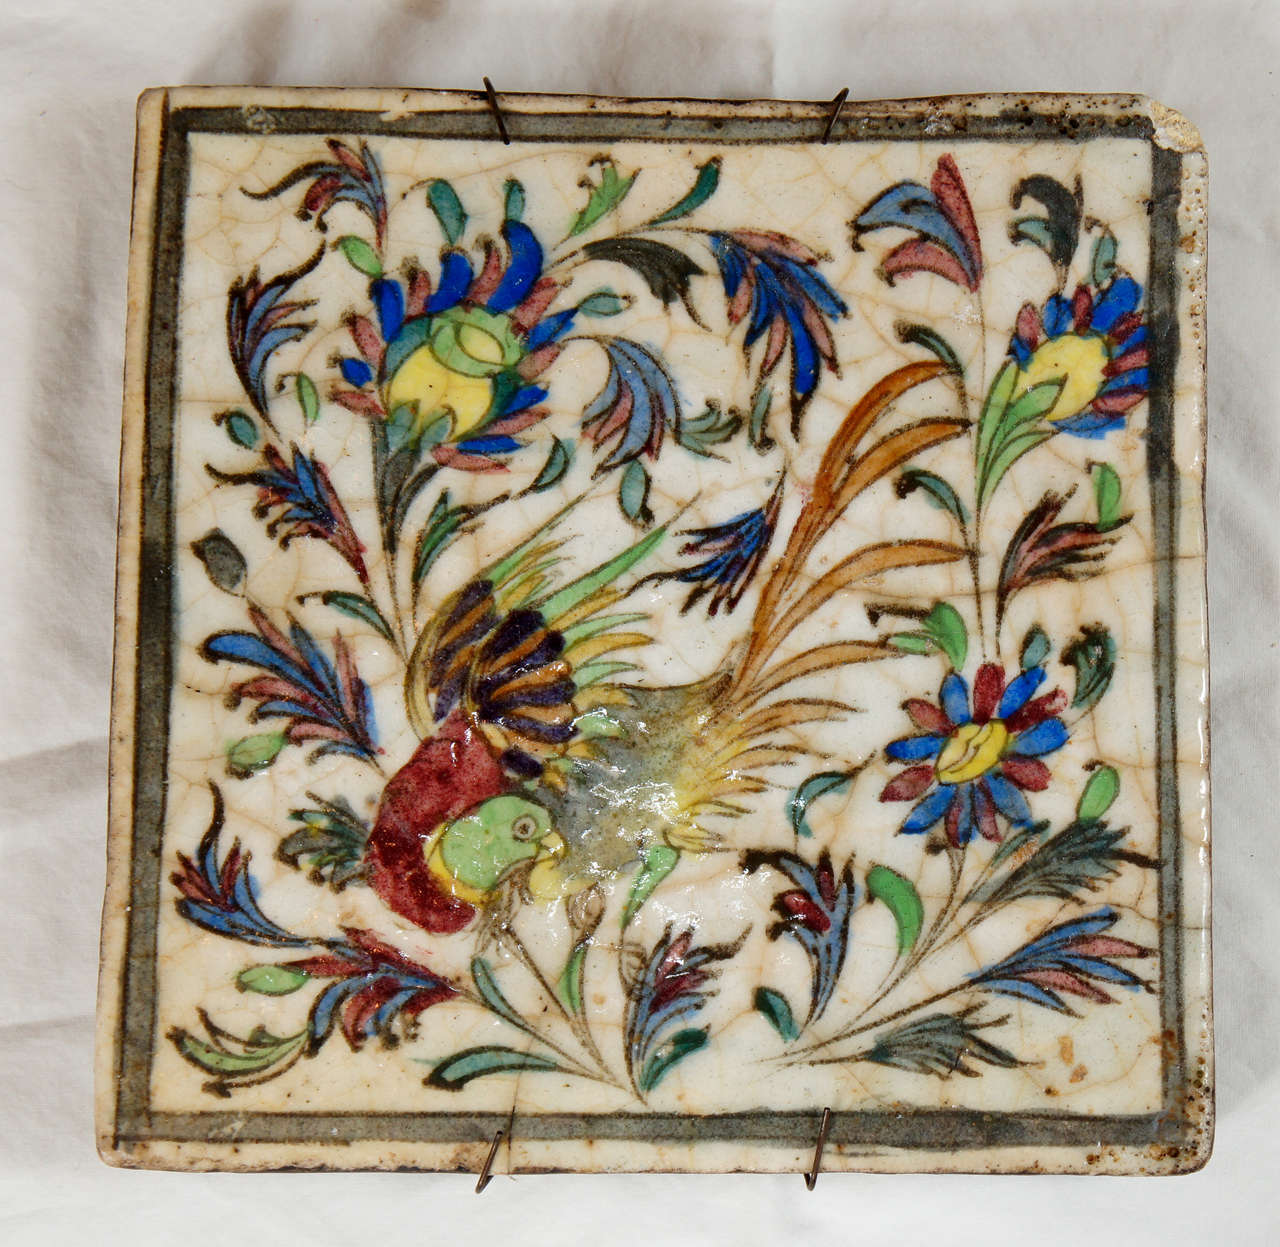 A Persian hand-painted Terra Cotta Tile